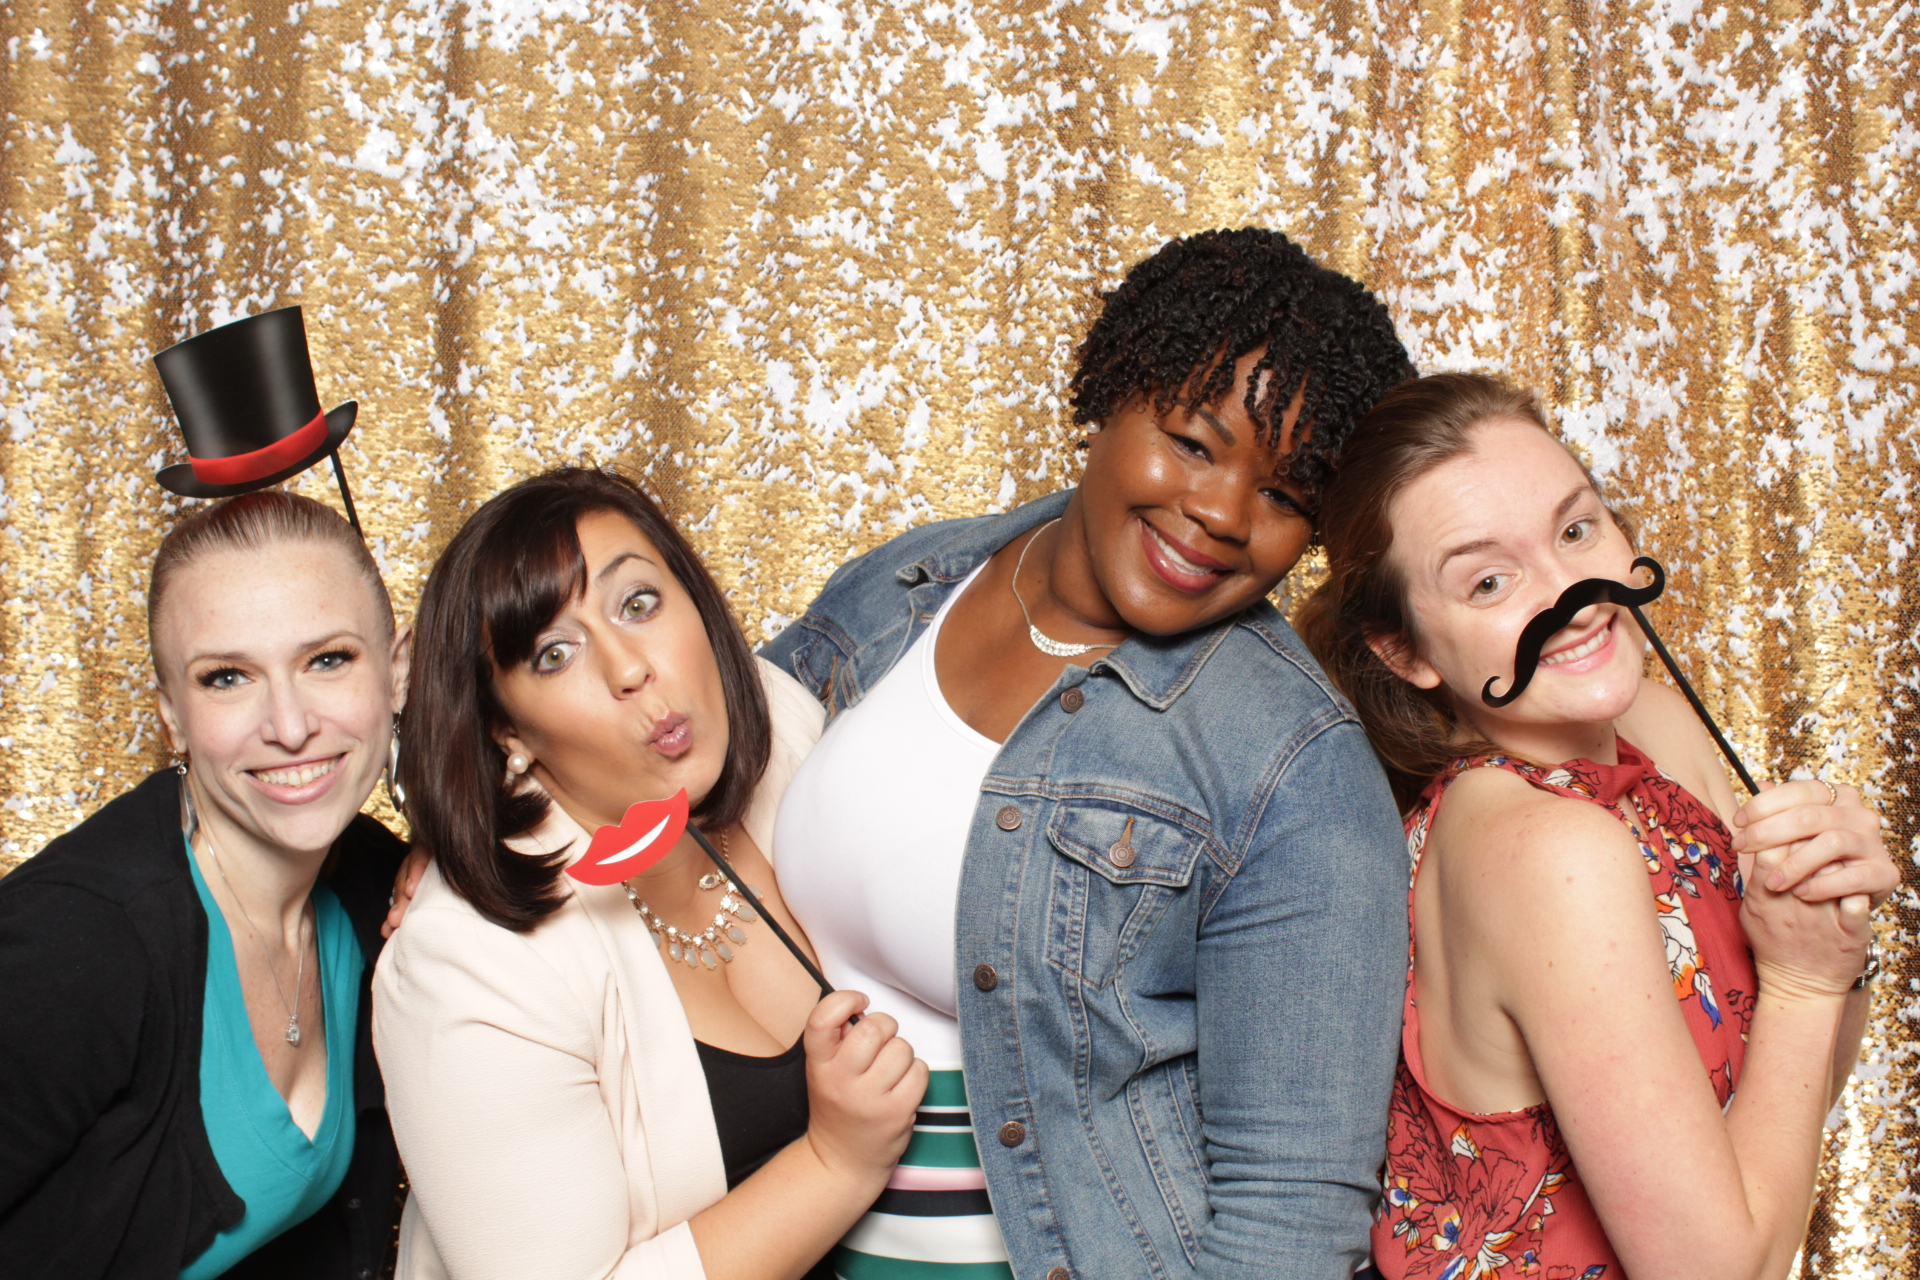 Philadelphia baby shower photo booth rental